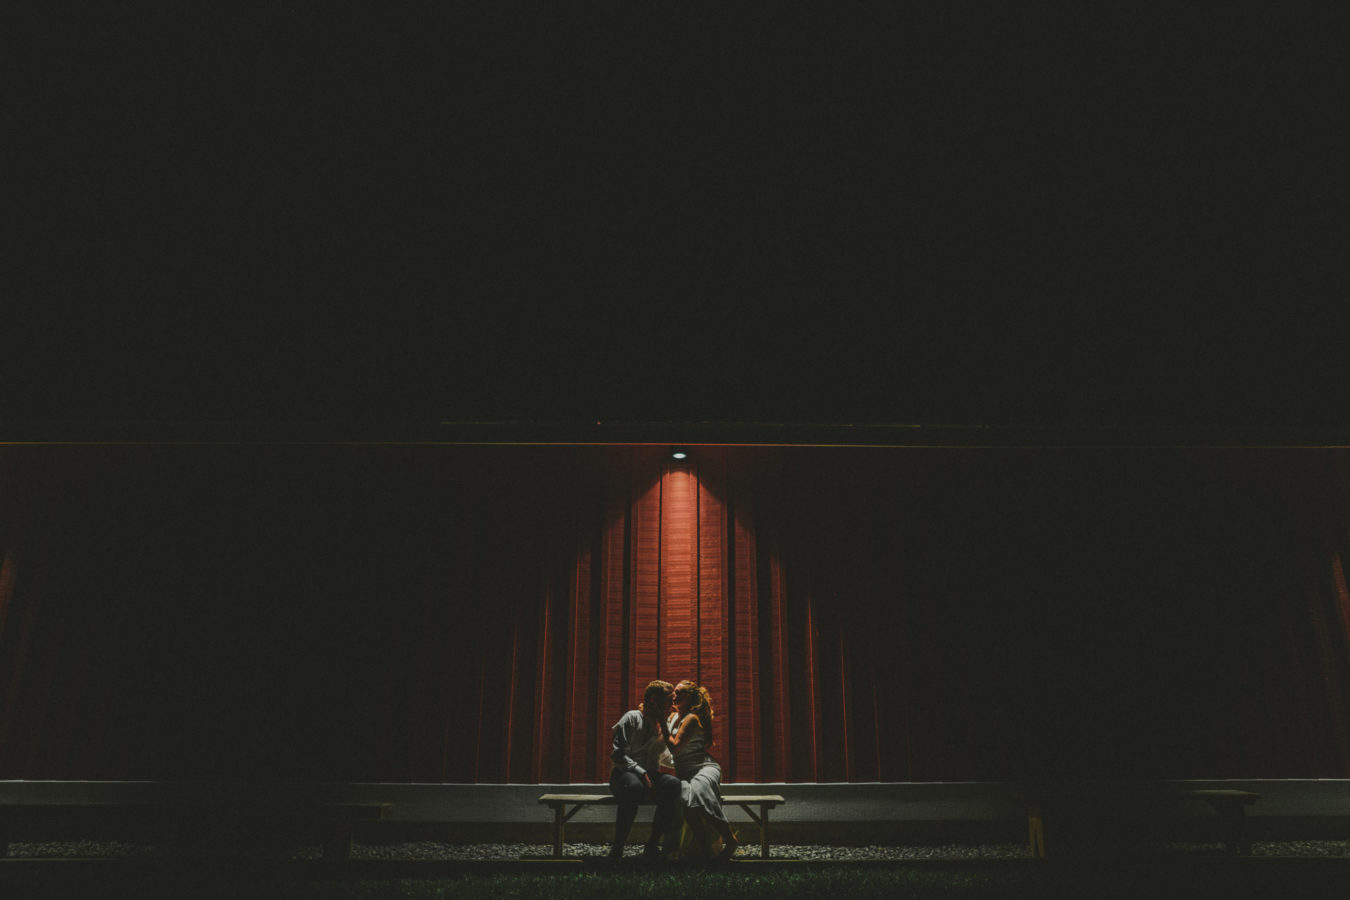 bride and groom at night on a bench next to a red barn with one light shining down upon them